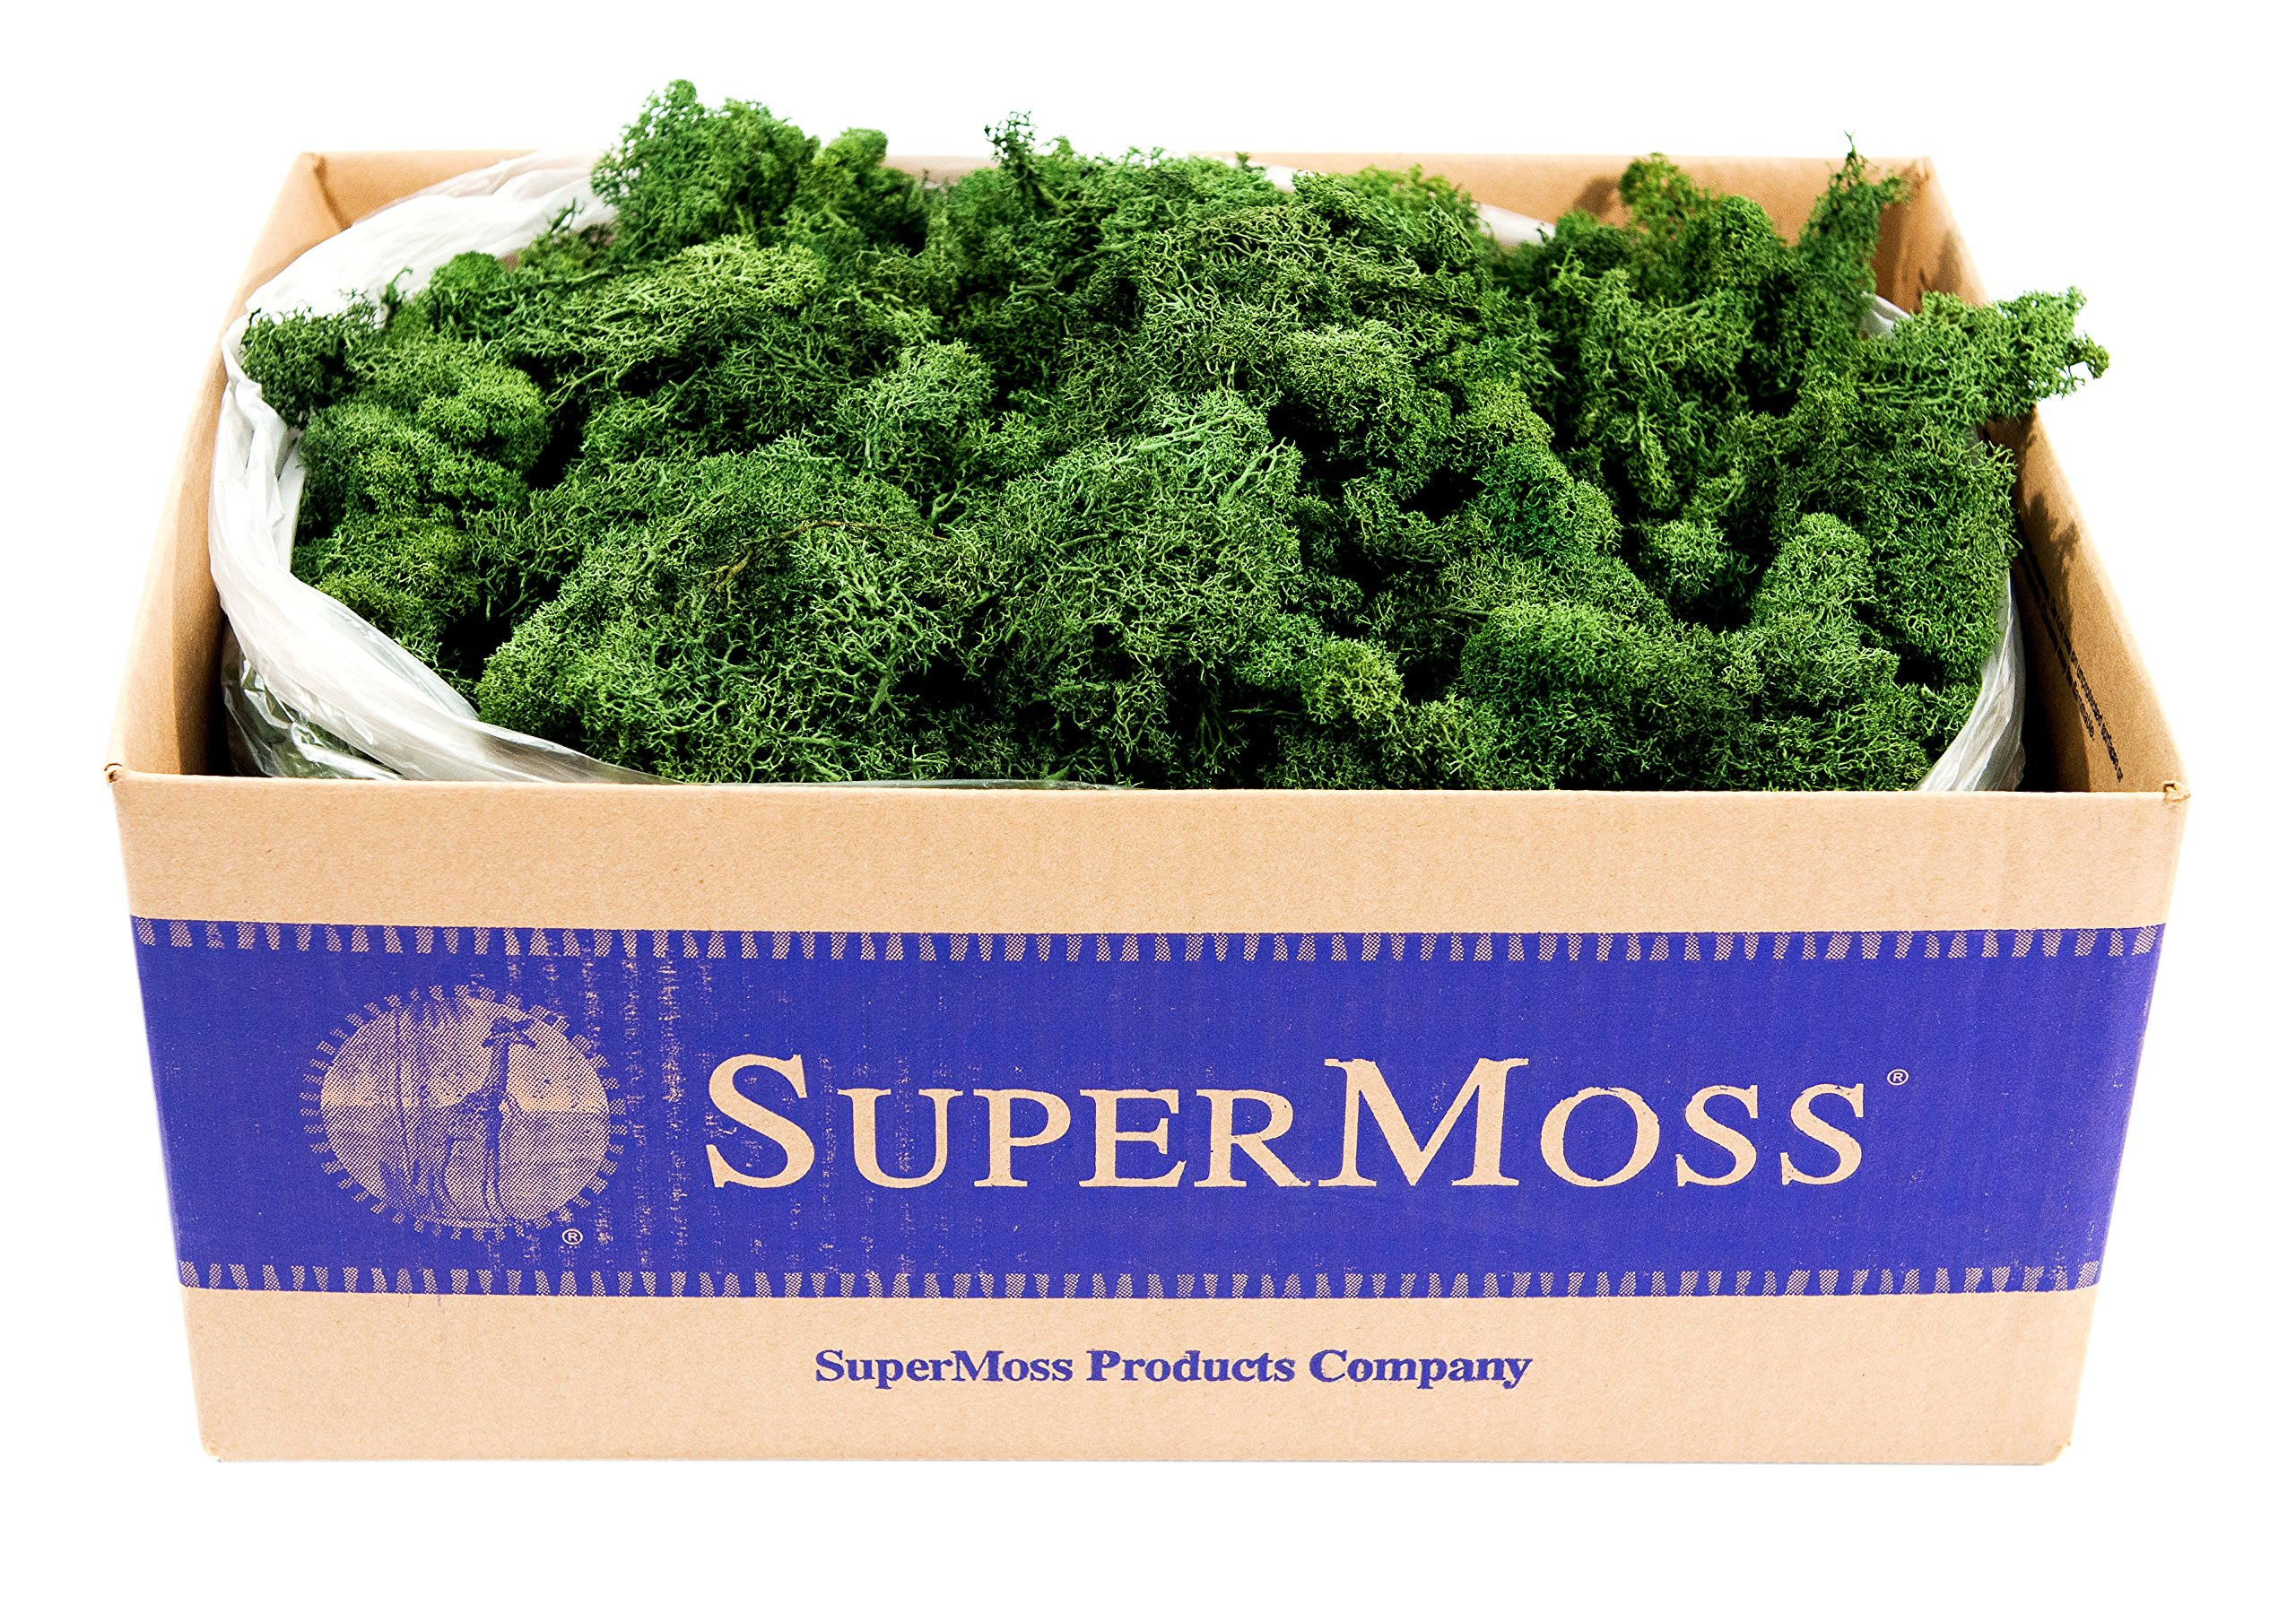 SuperMoss (21710) Reindeer Moss Preserved, Forest Green, 3lbs by Super Moss